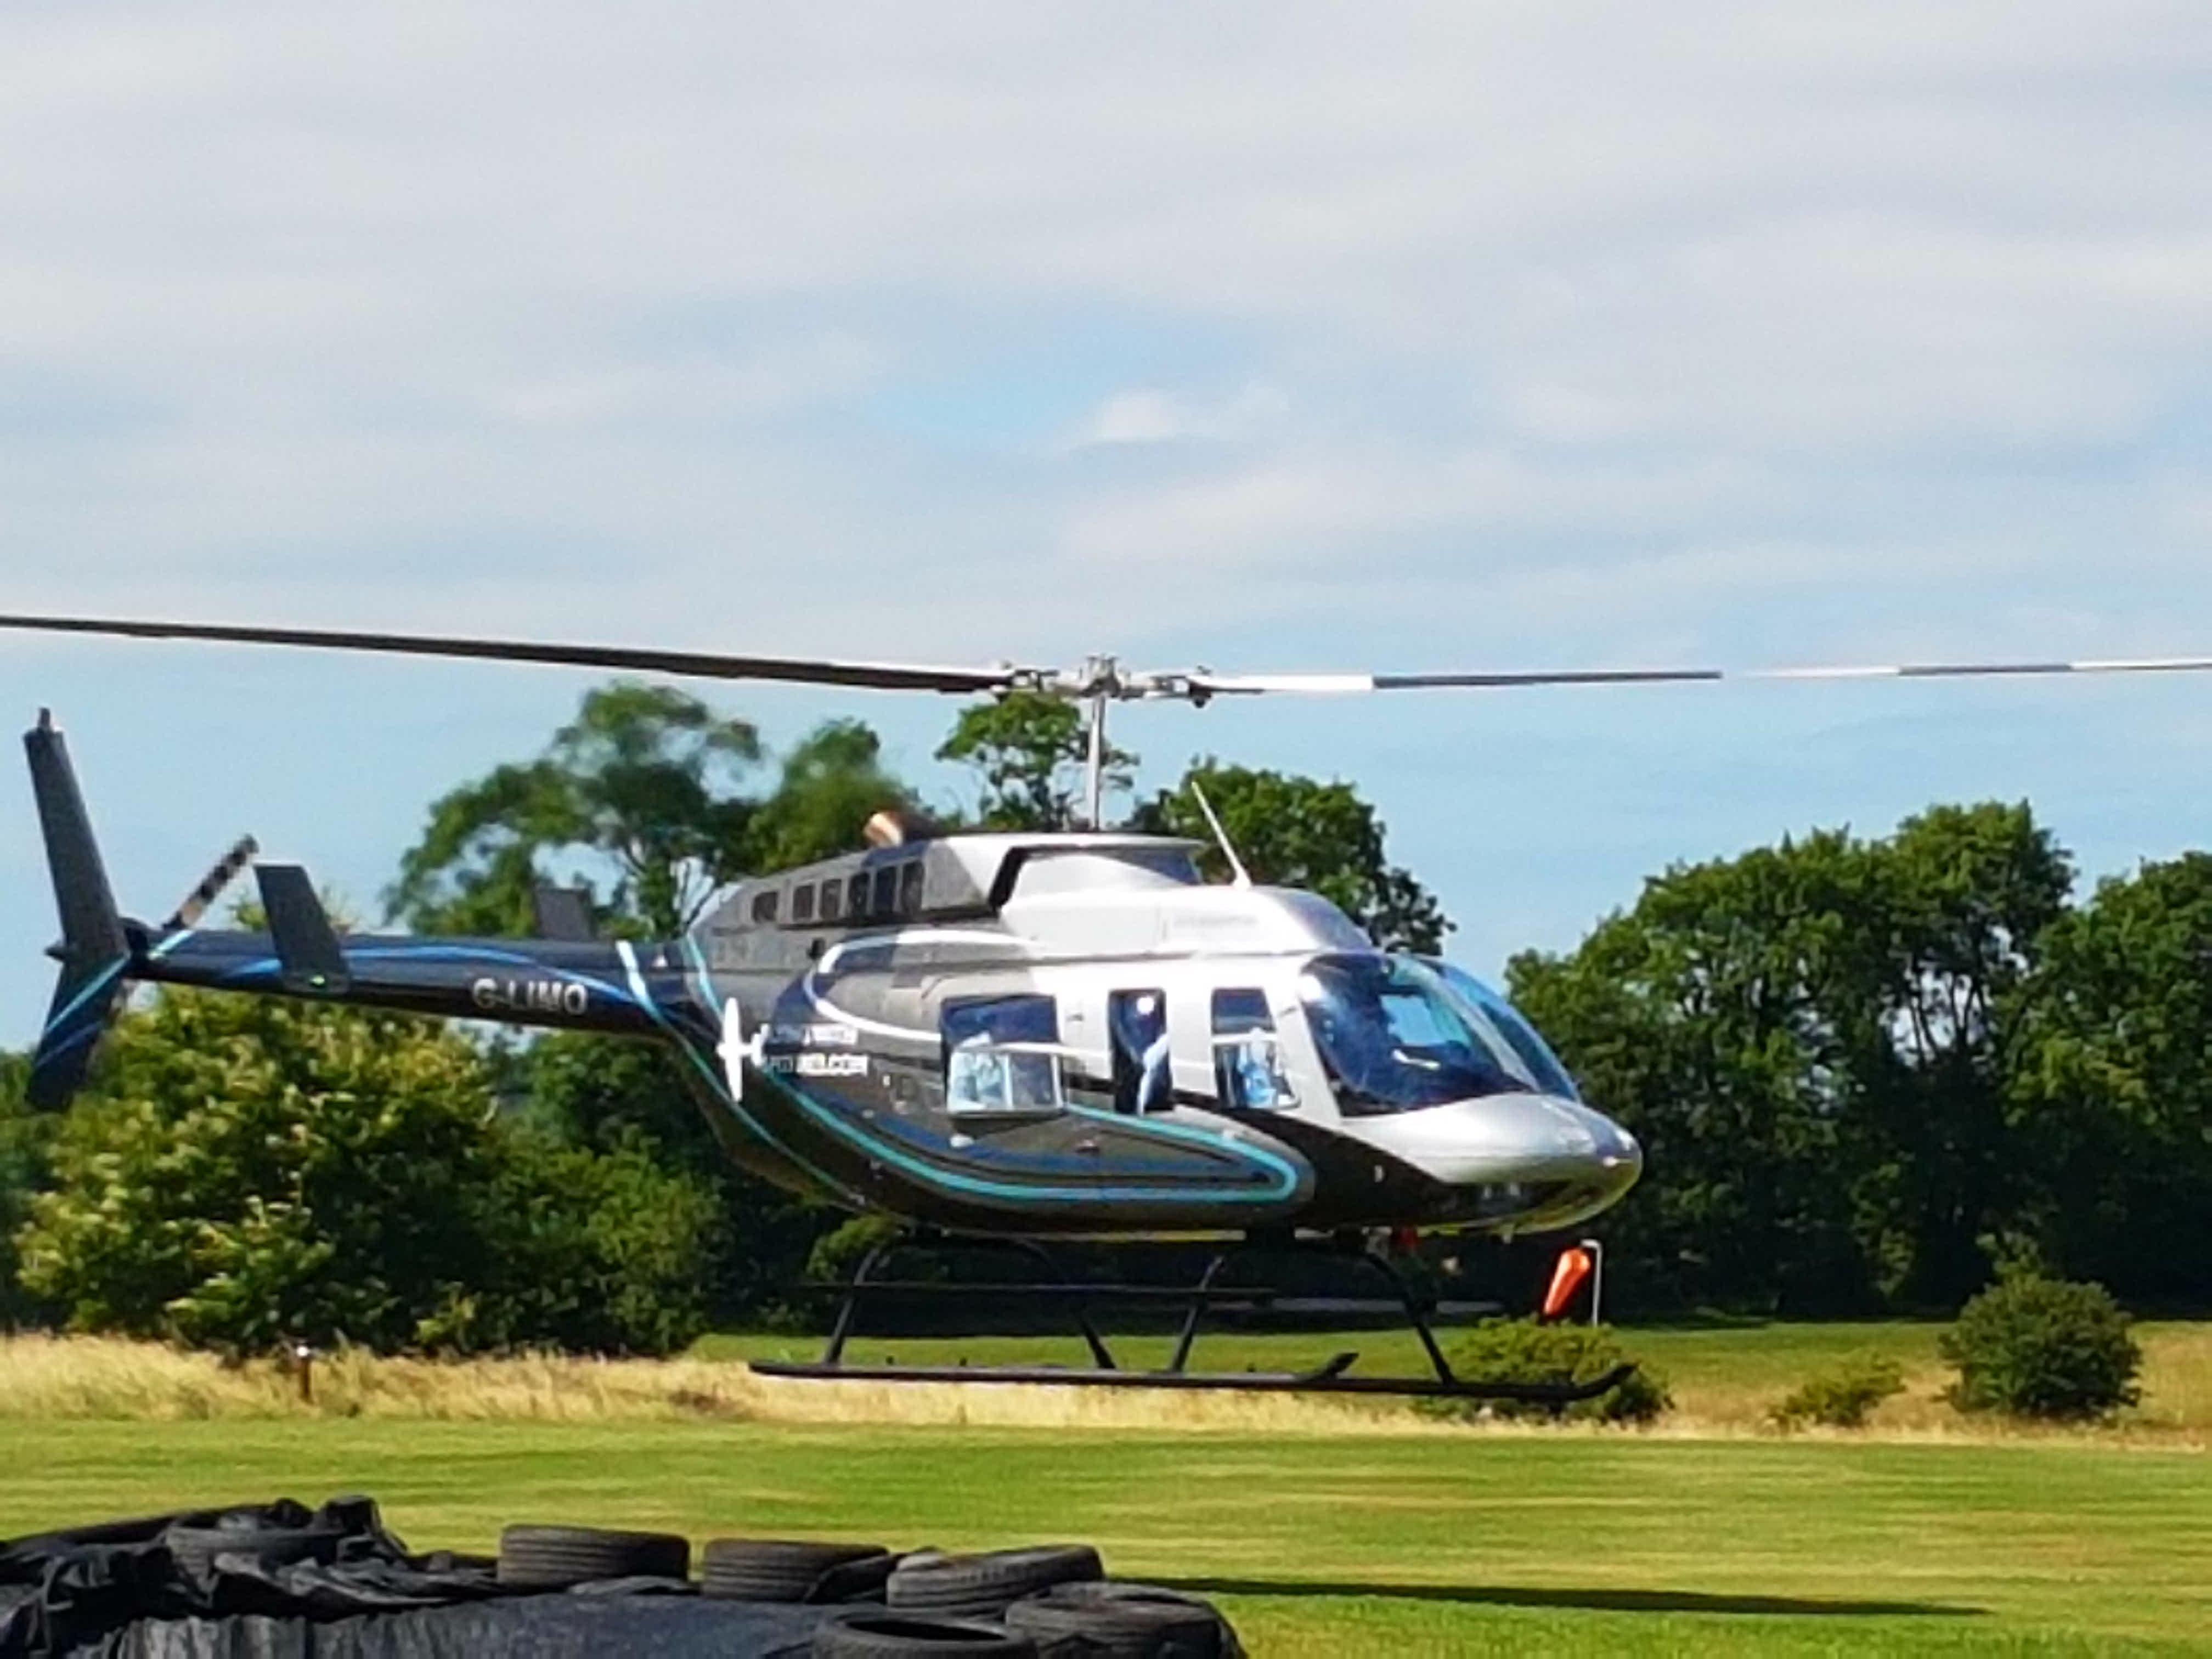 Elite Helicopters Chichester England Top Tips Before You Go  TripAdvisor